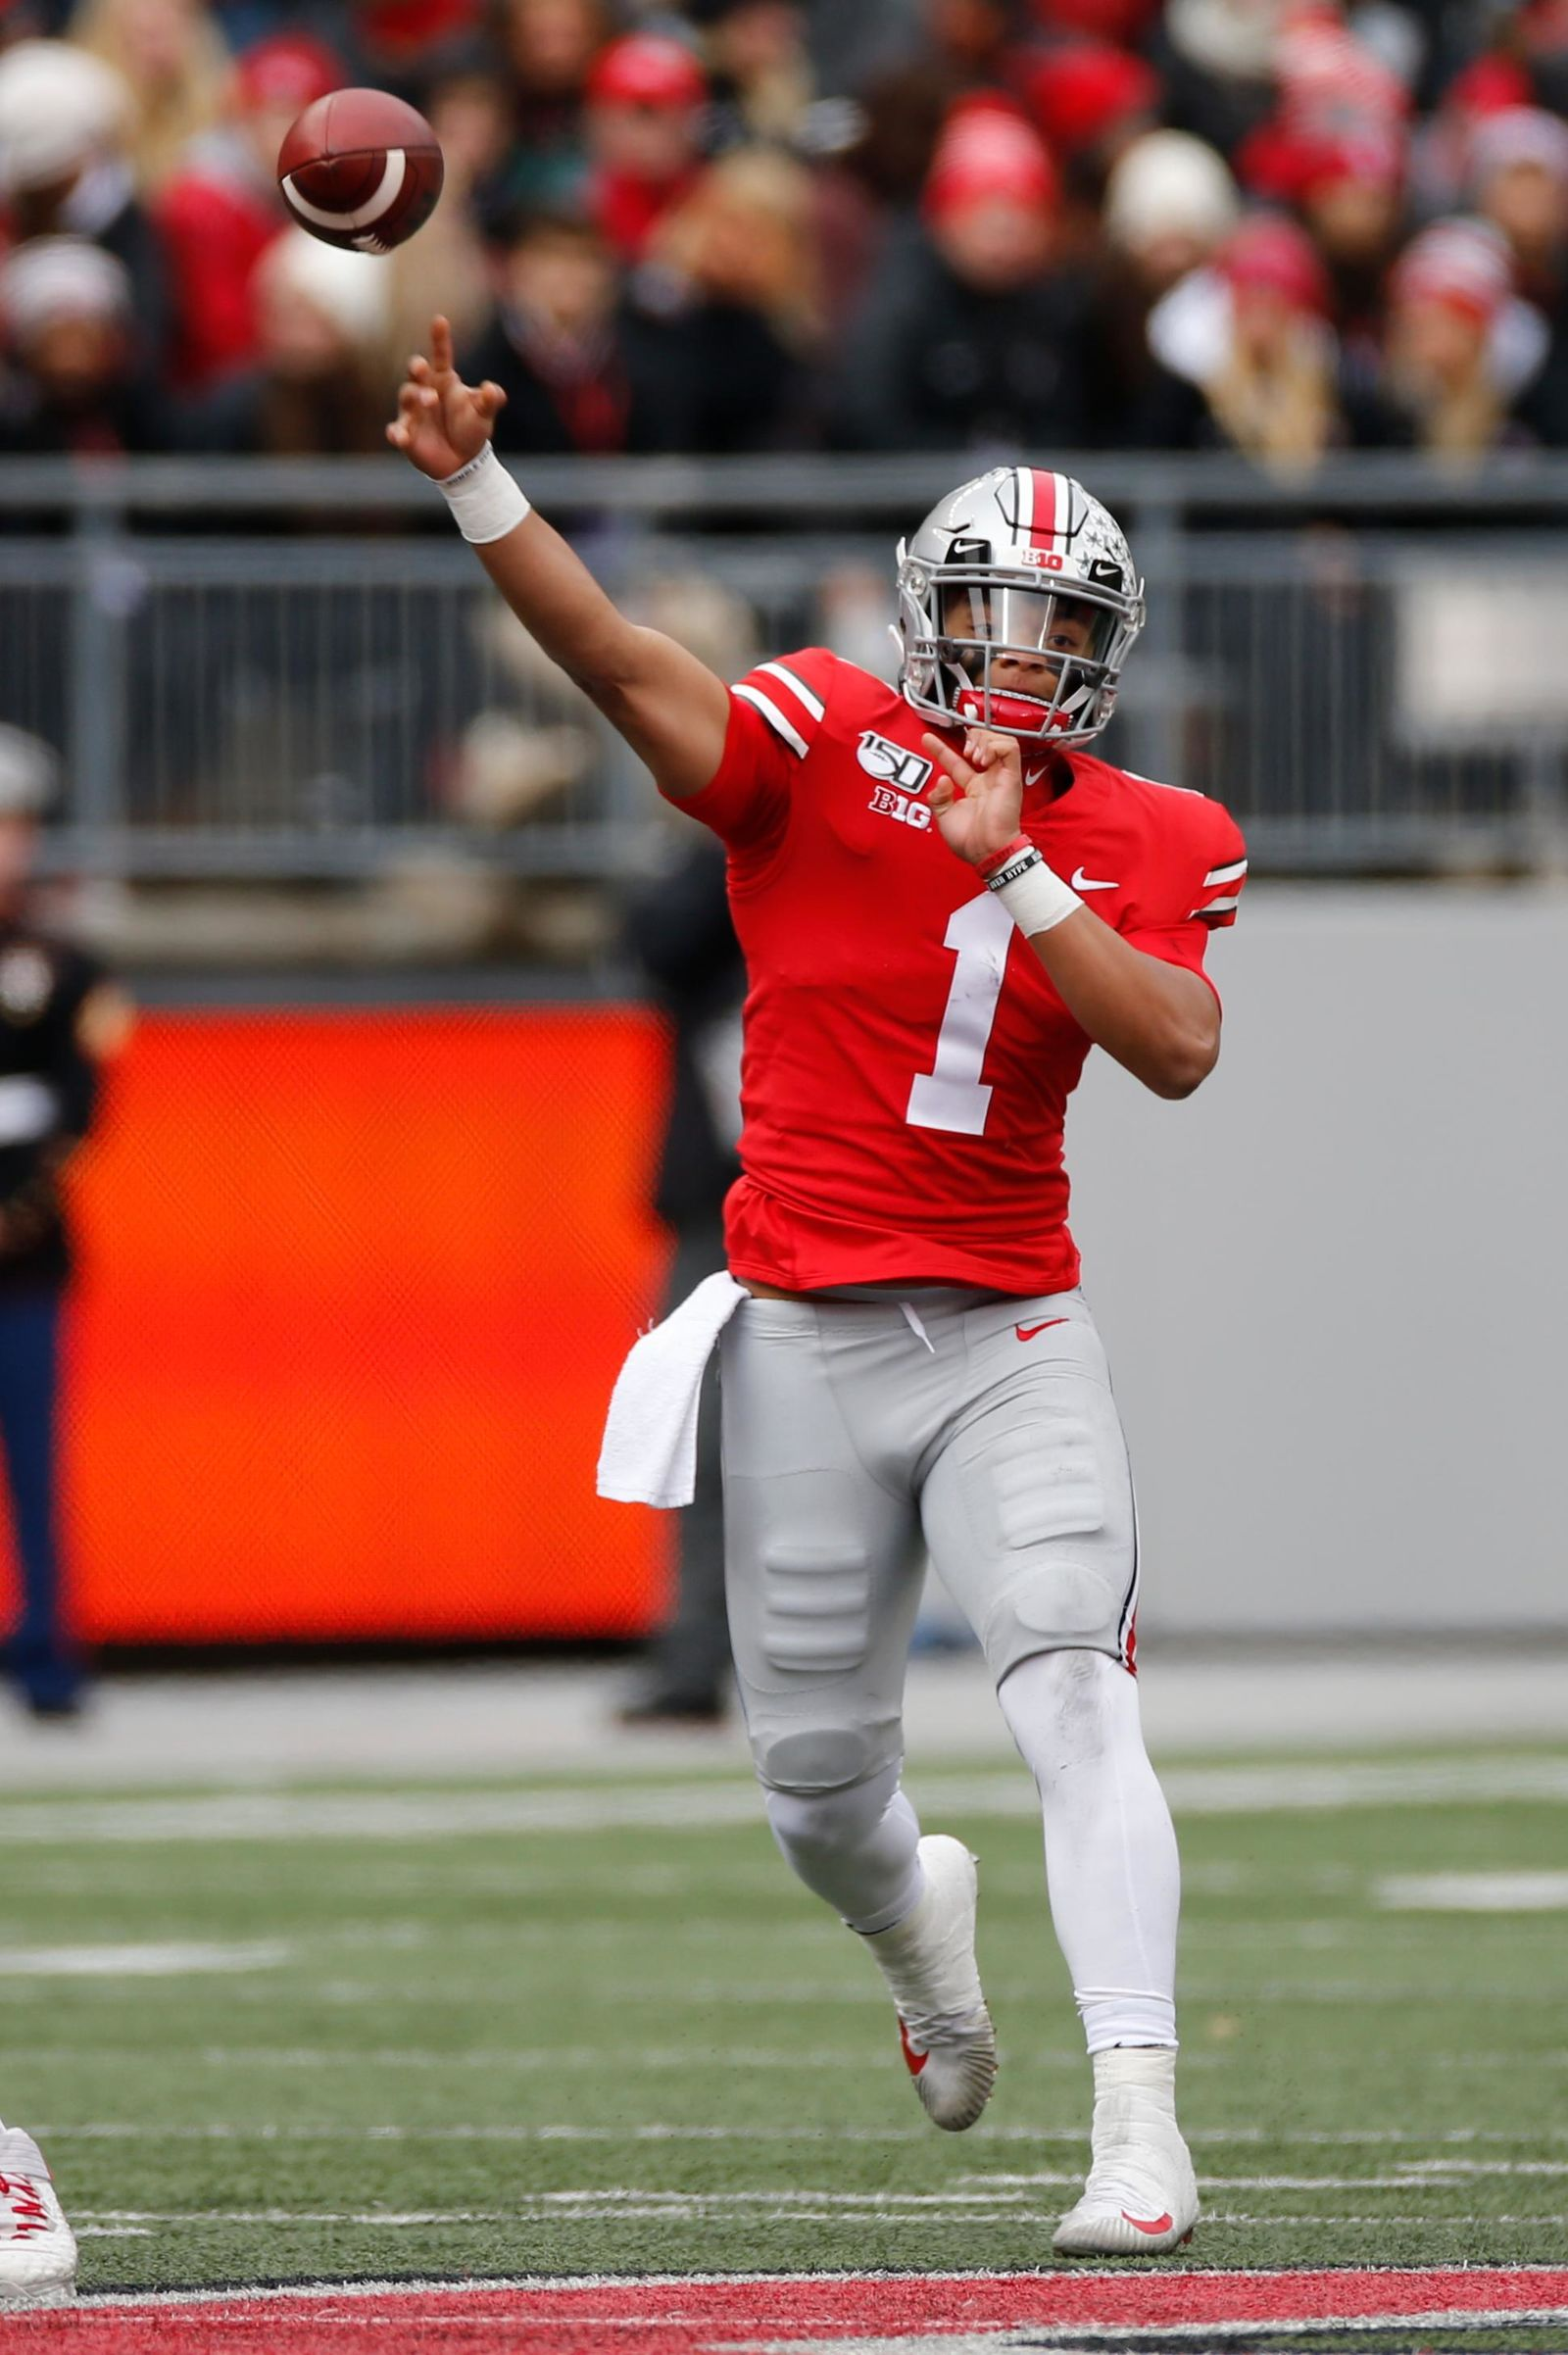 Ohio State quarterback Justin Fields throws a pass against Maryland during the first half of an NCAA college football game, Saturday, Nov. 9, 2019, in Columbus, Ohio. (AP Photo/Jay LaPrete)